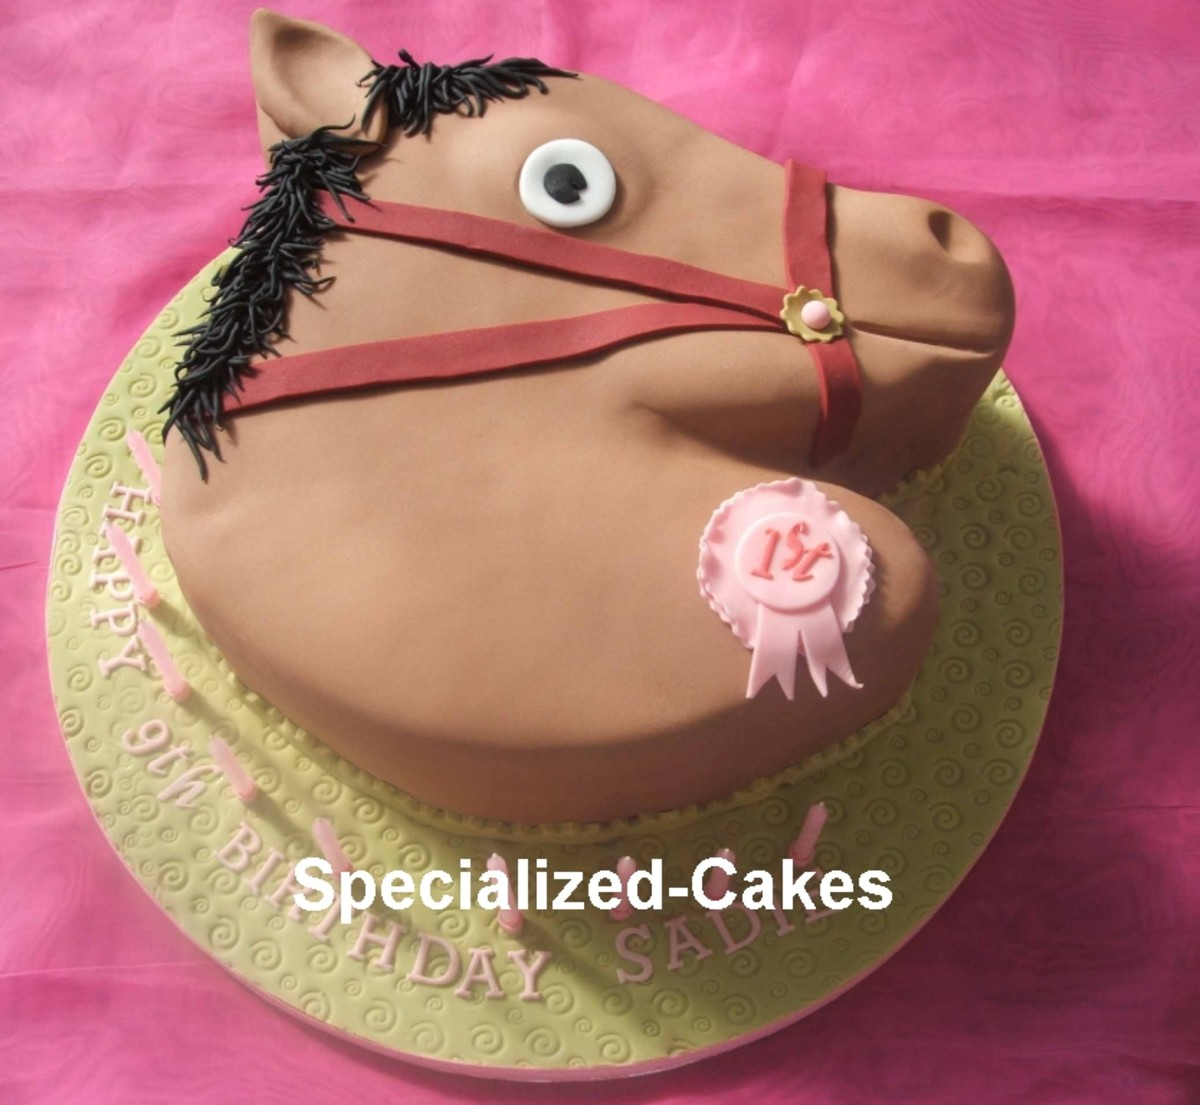 specialized-cakes.co.uk